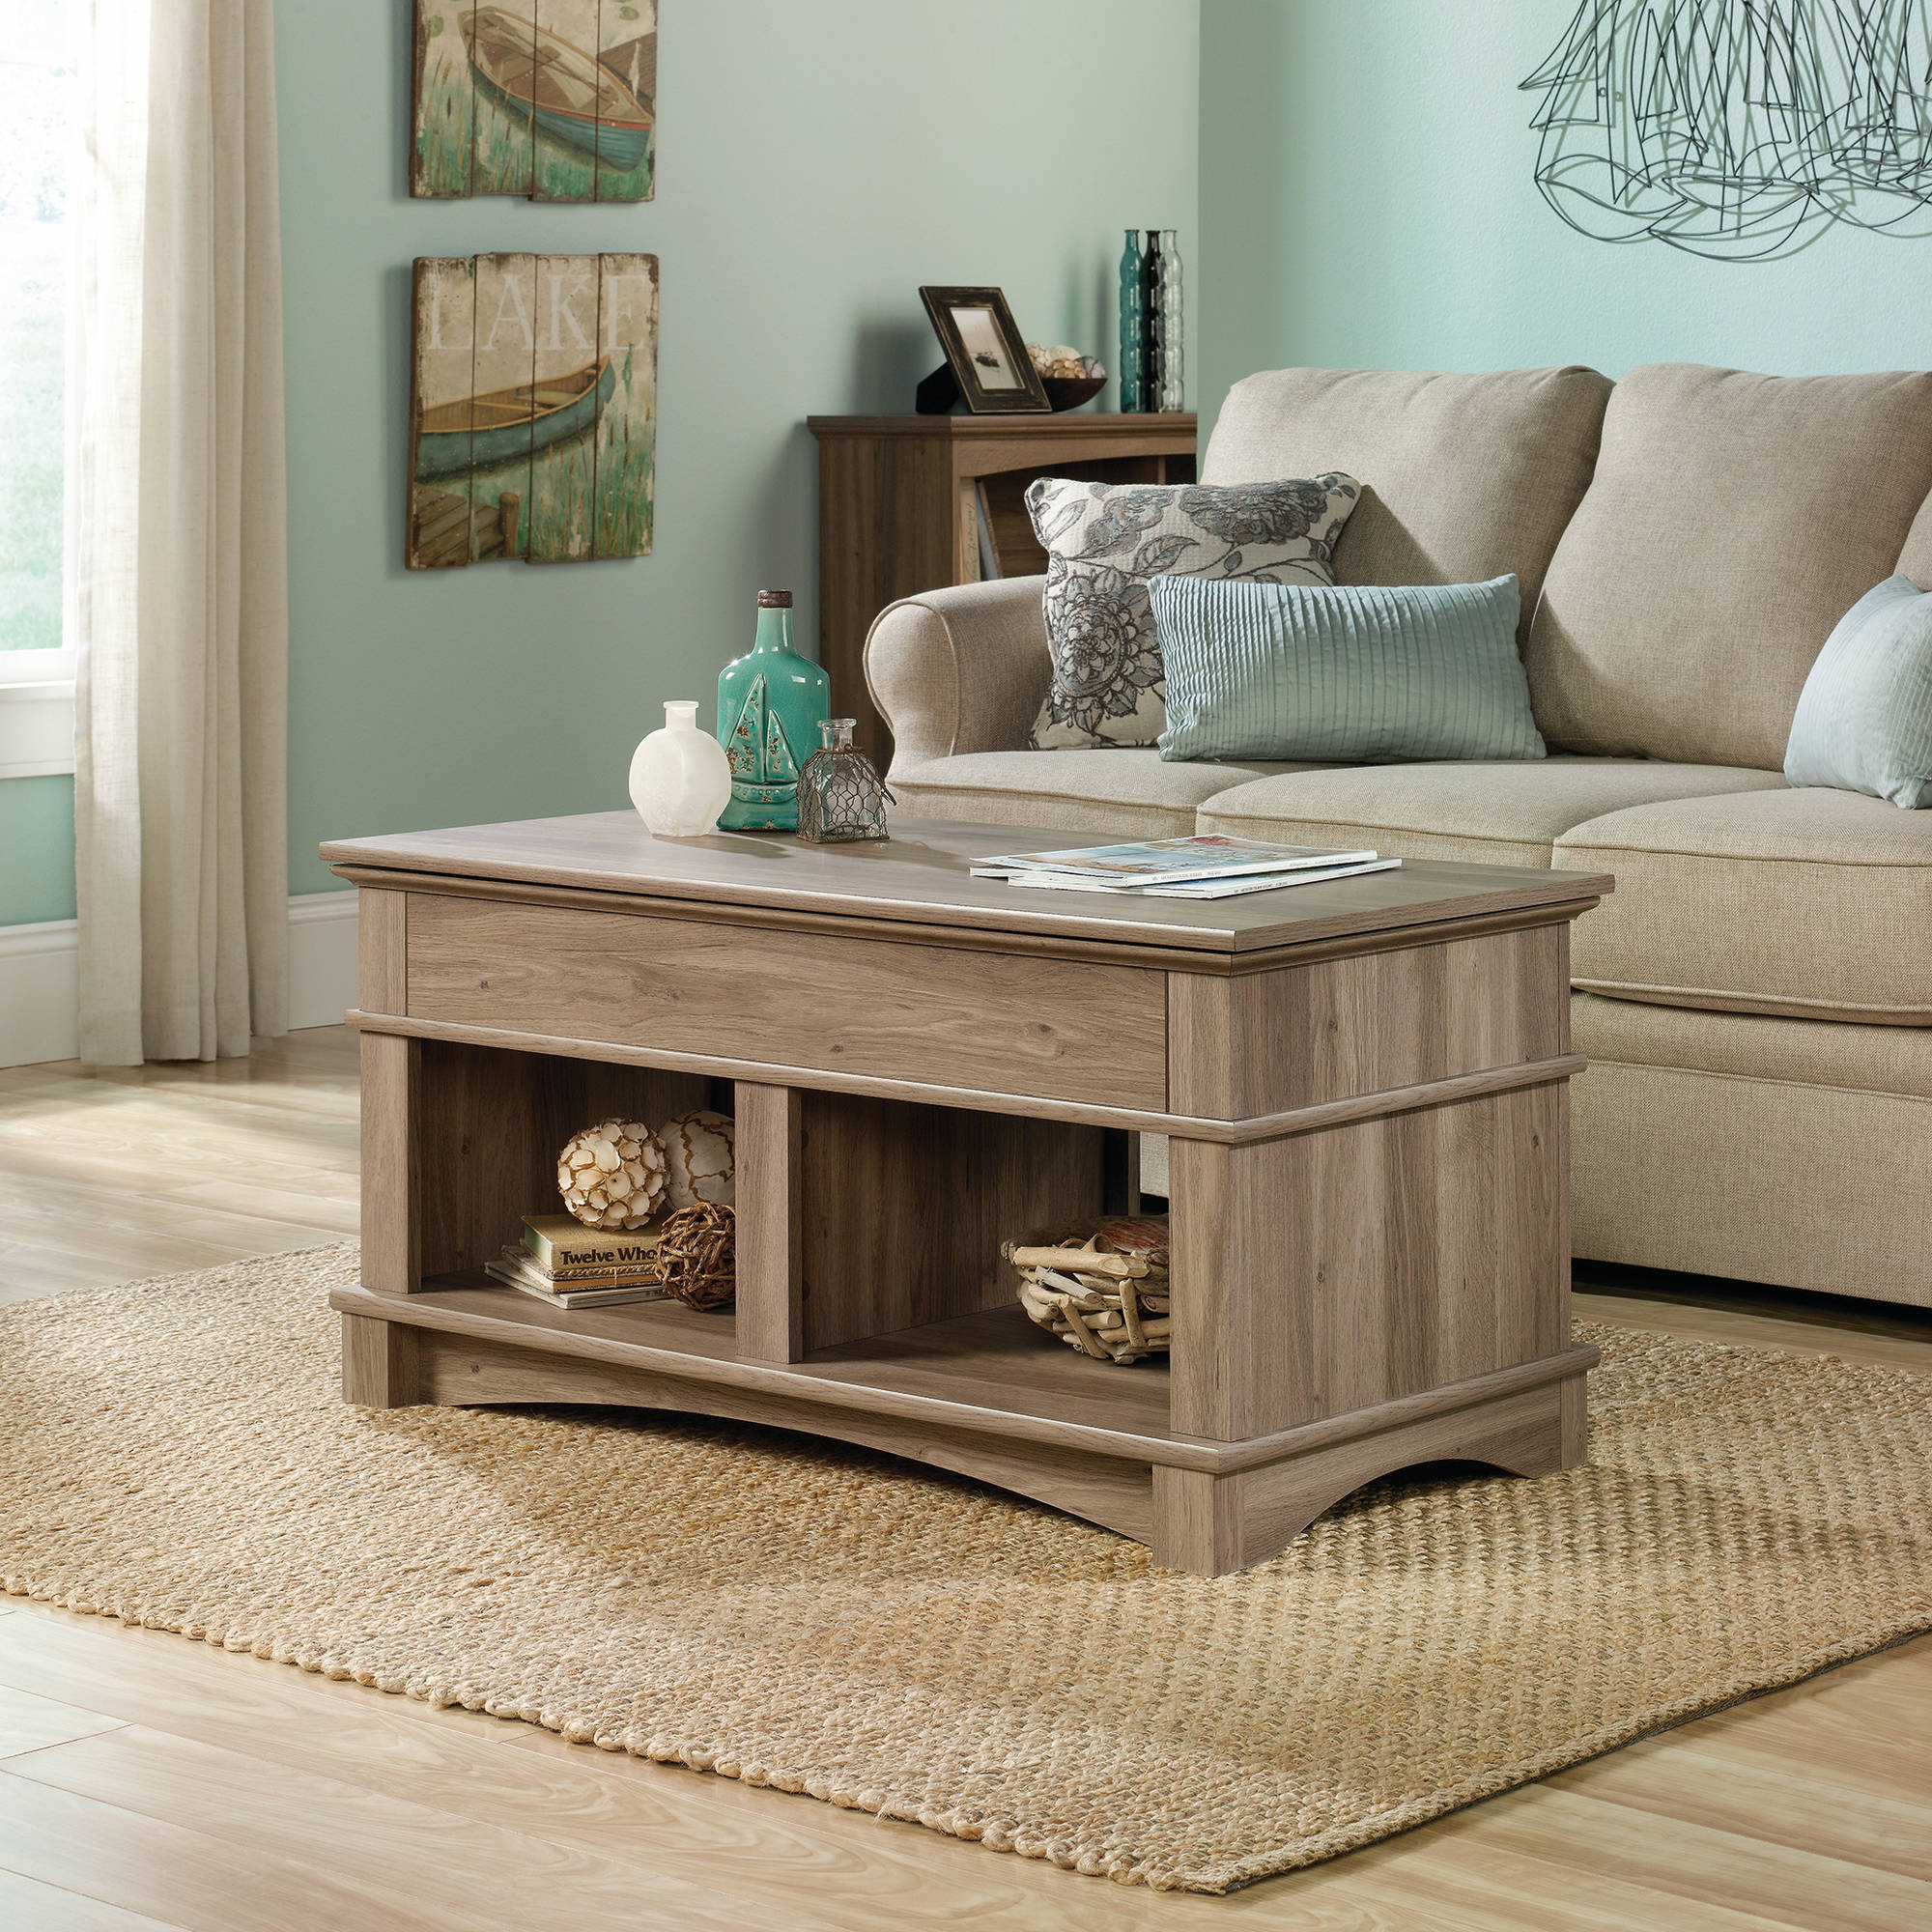 Living Room Walmart Living Room Sets With Elegant Furniture Design with 14 Genius Ideas How to Craft Living Room Sets Walmart